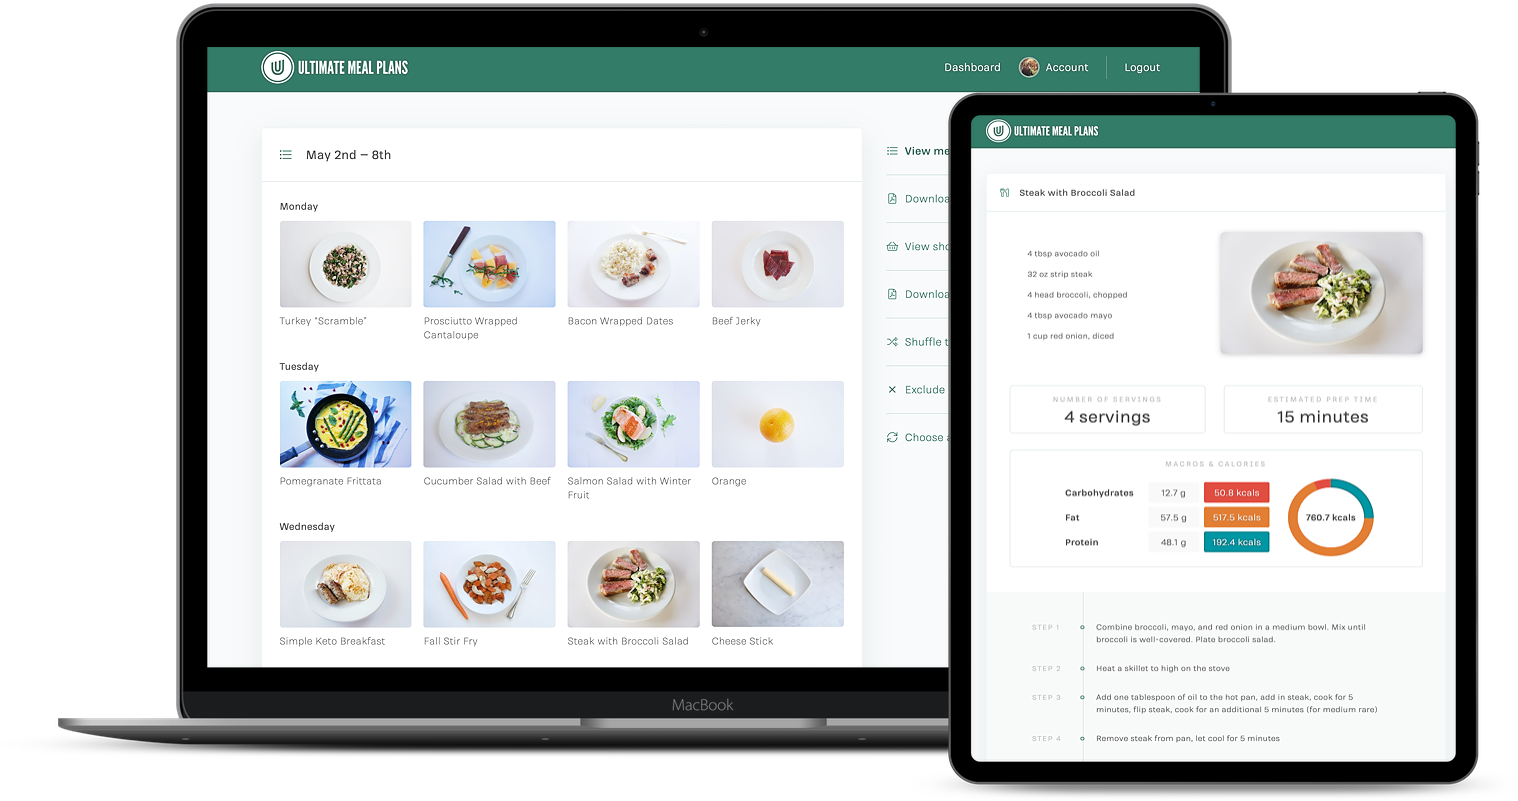 Ultimate Meal Plans app on ipad and mobile screen